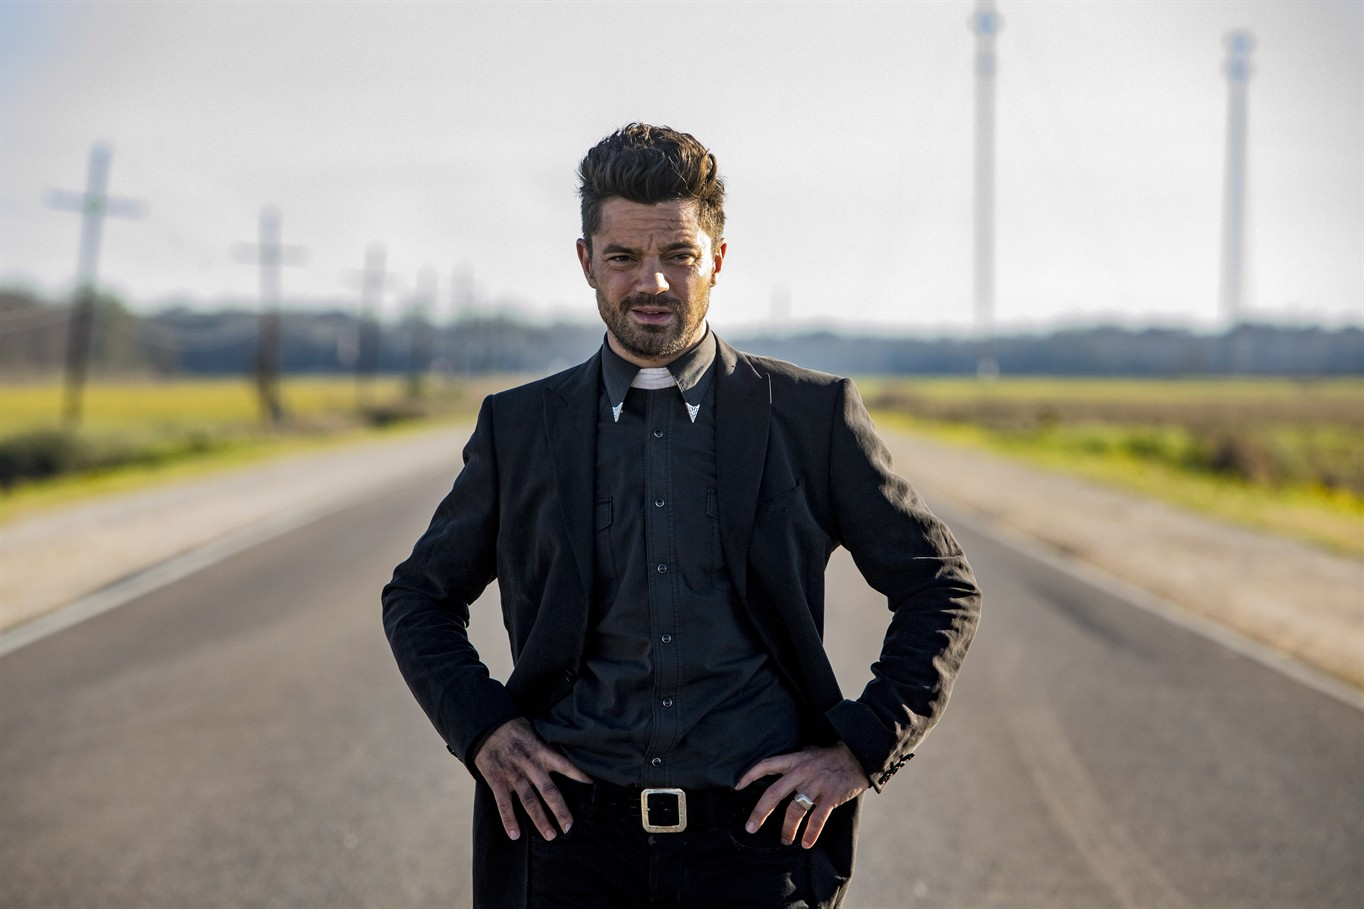 Preacher Season 2 Promises More Comic Book Storylines And New Twists